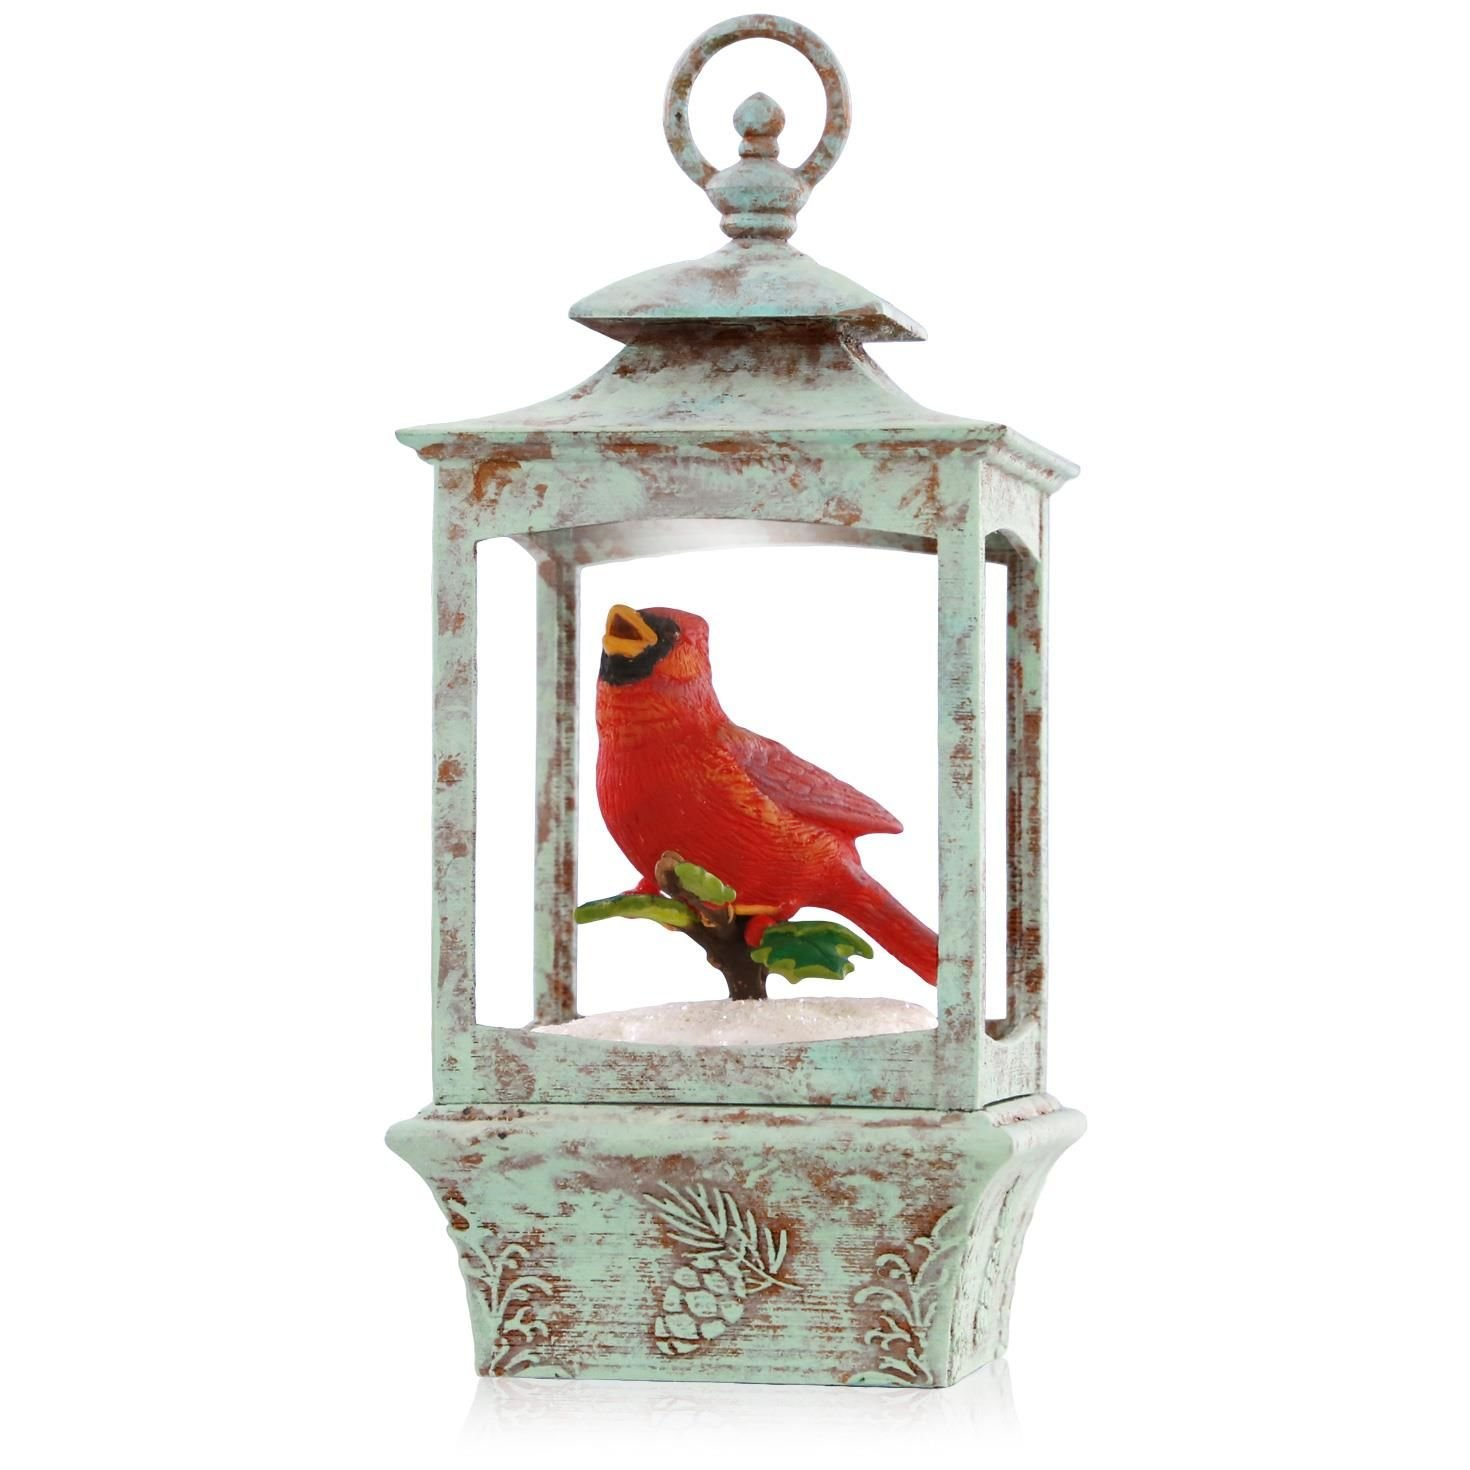 Festive Cardinal Birds Christmas Ornaments